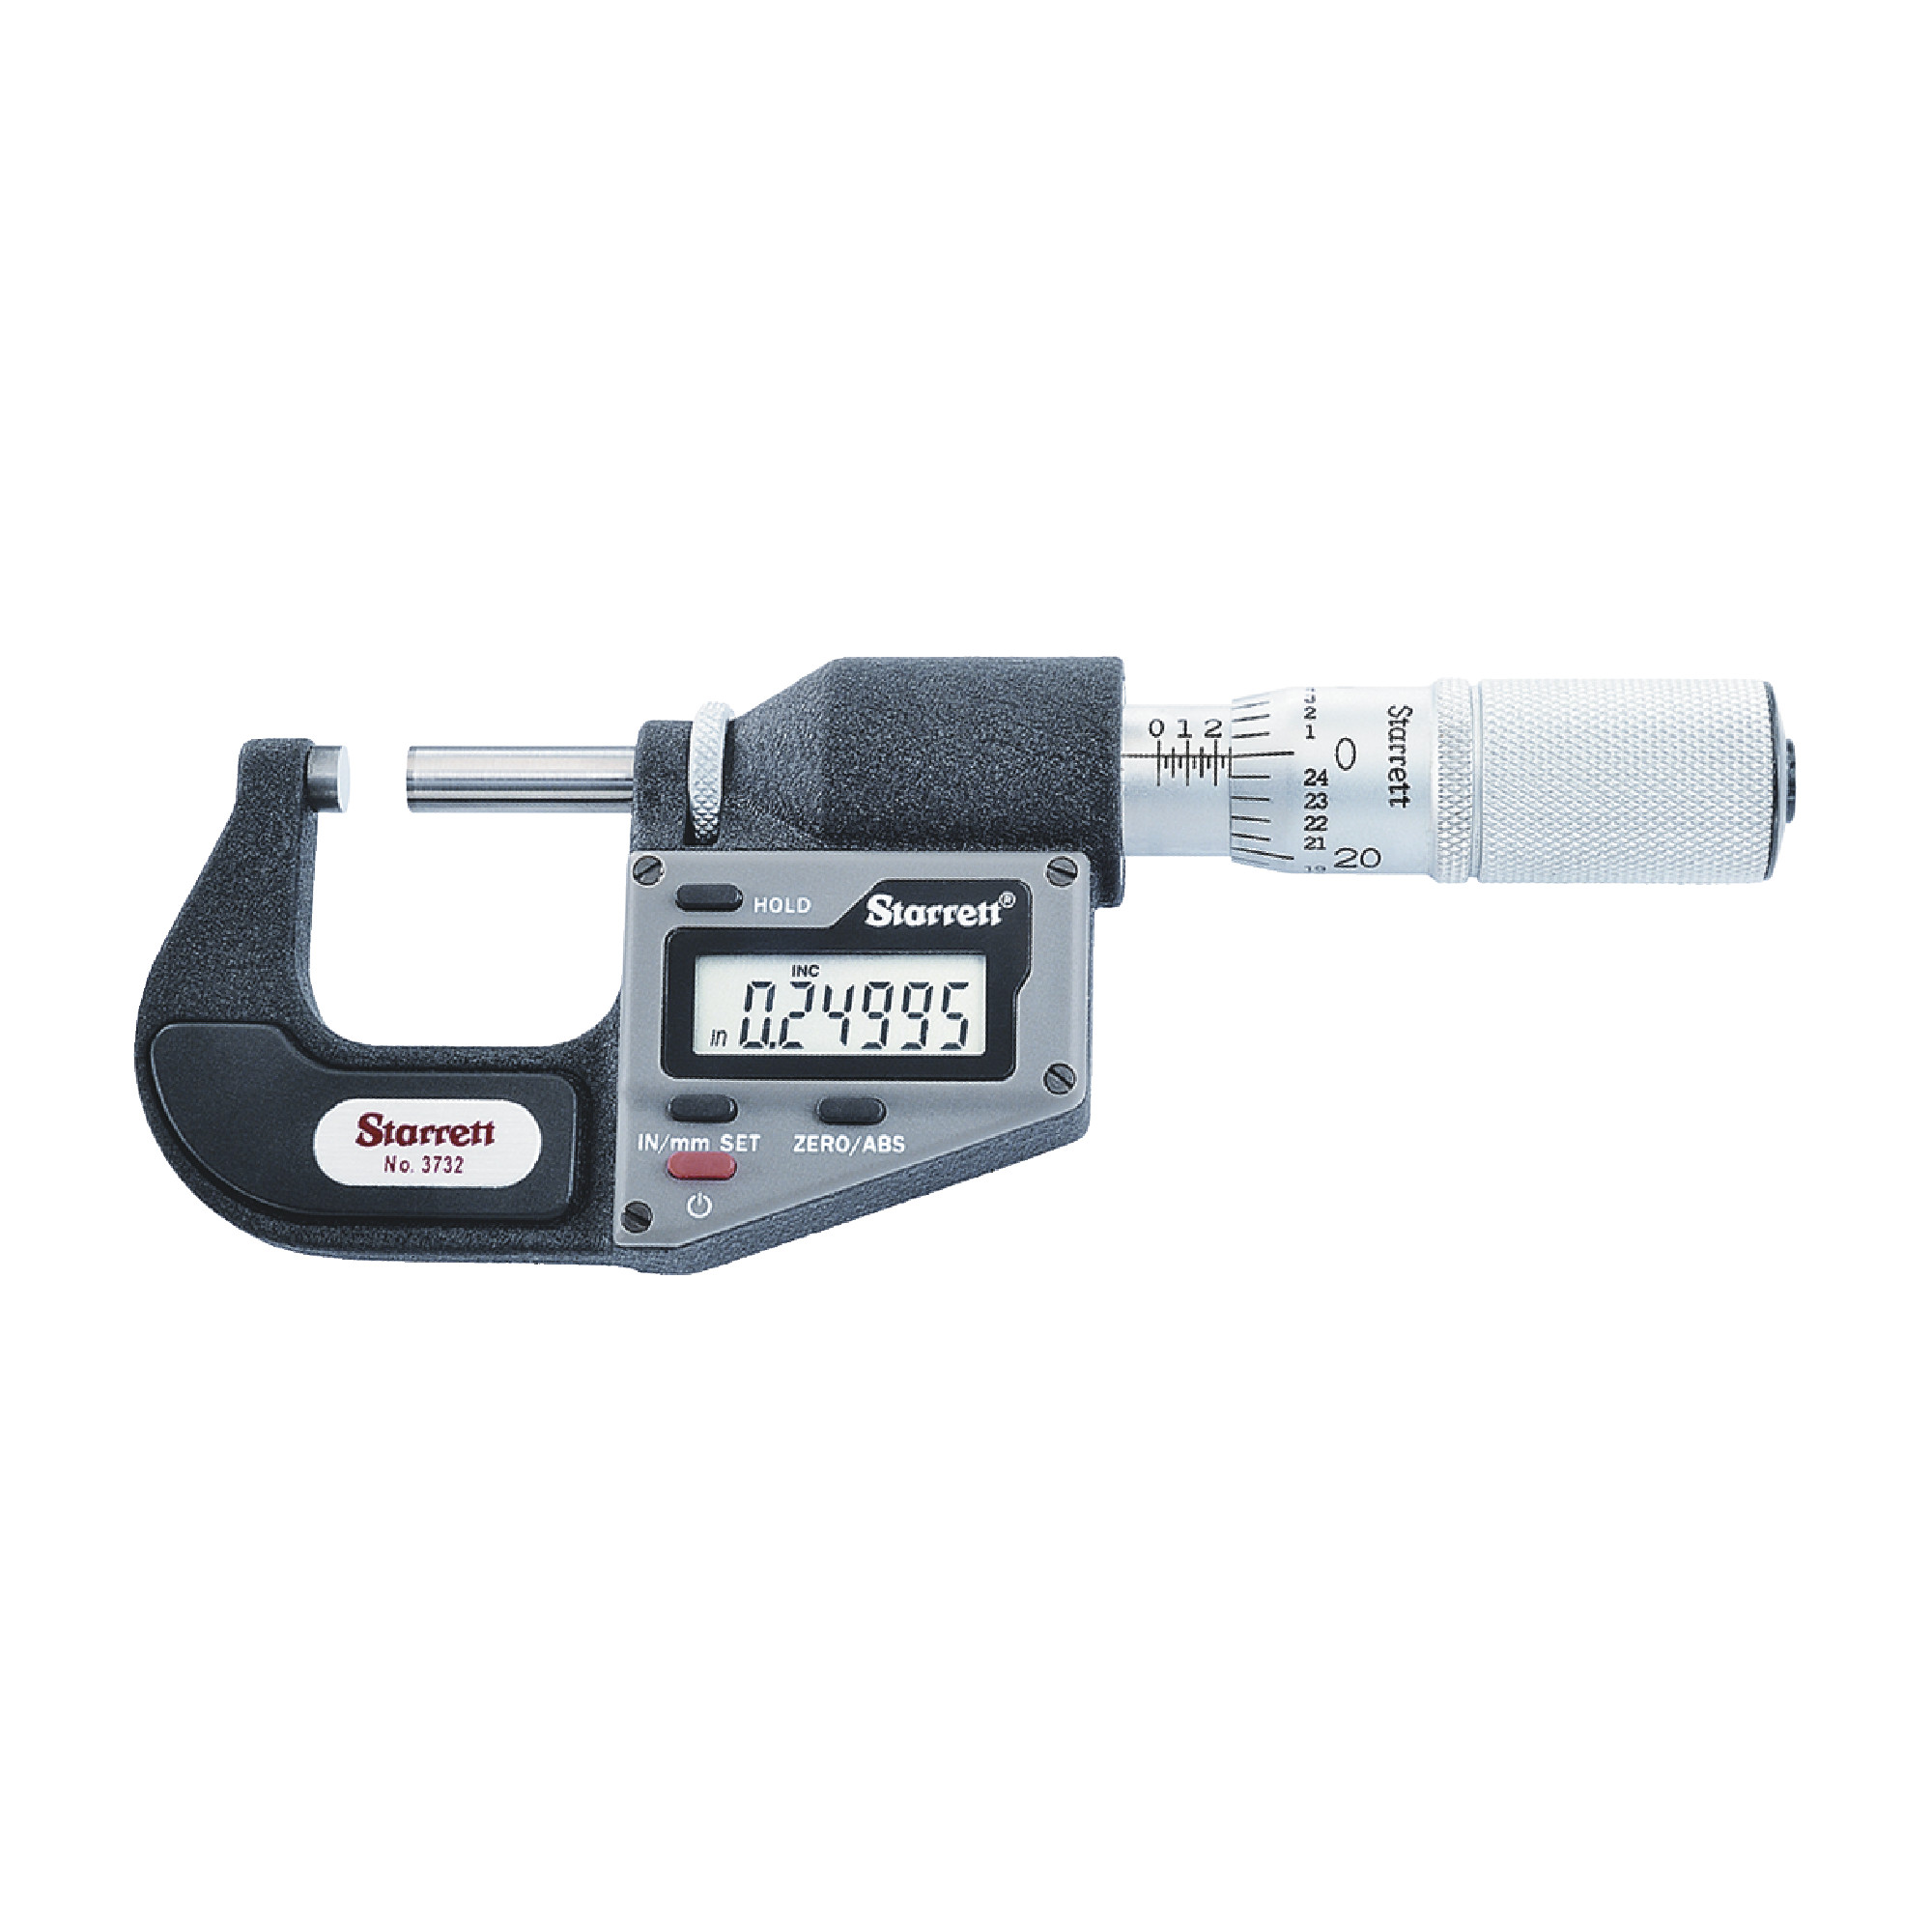 3732 Series Electronic Micrometer